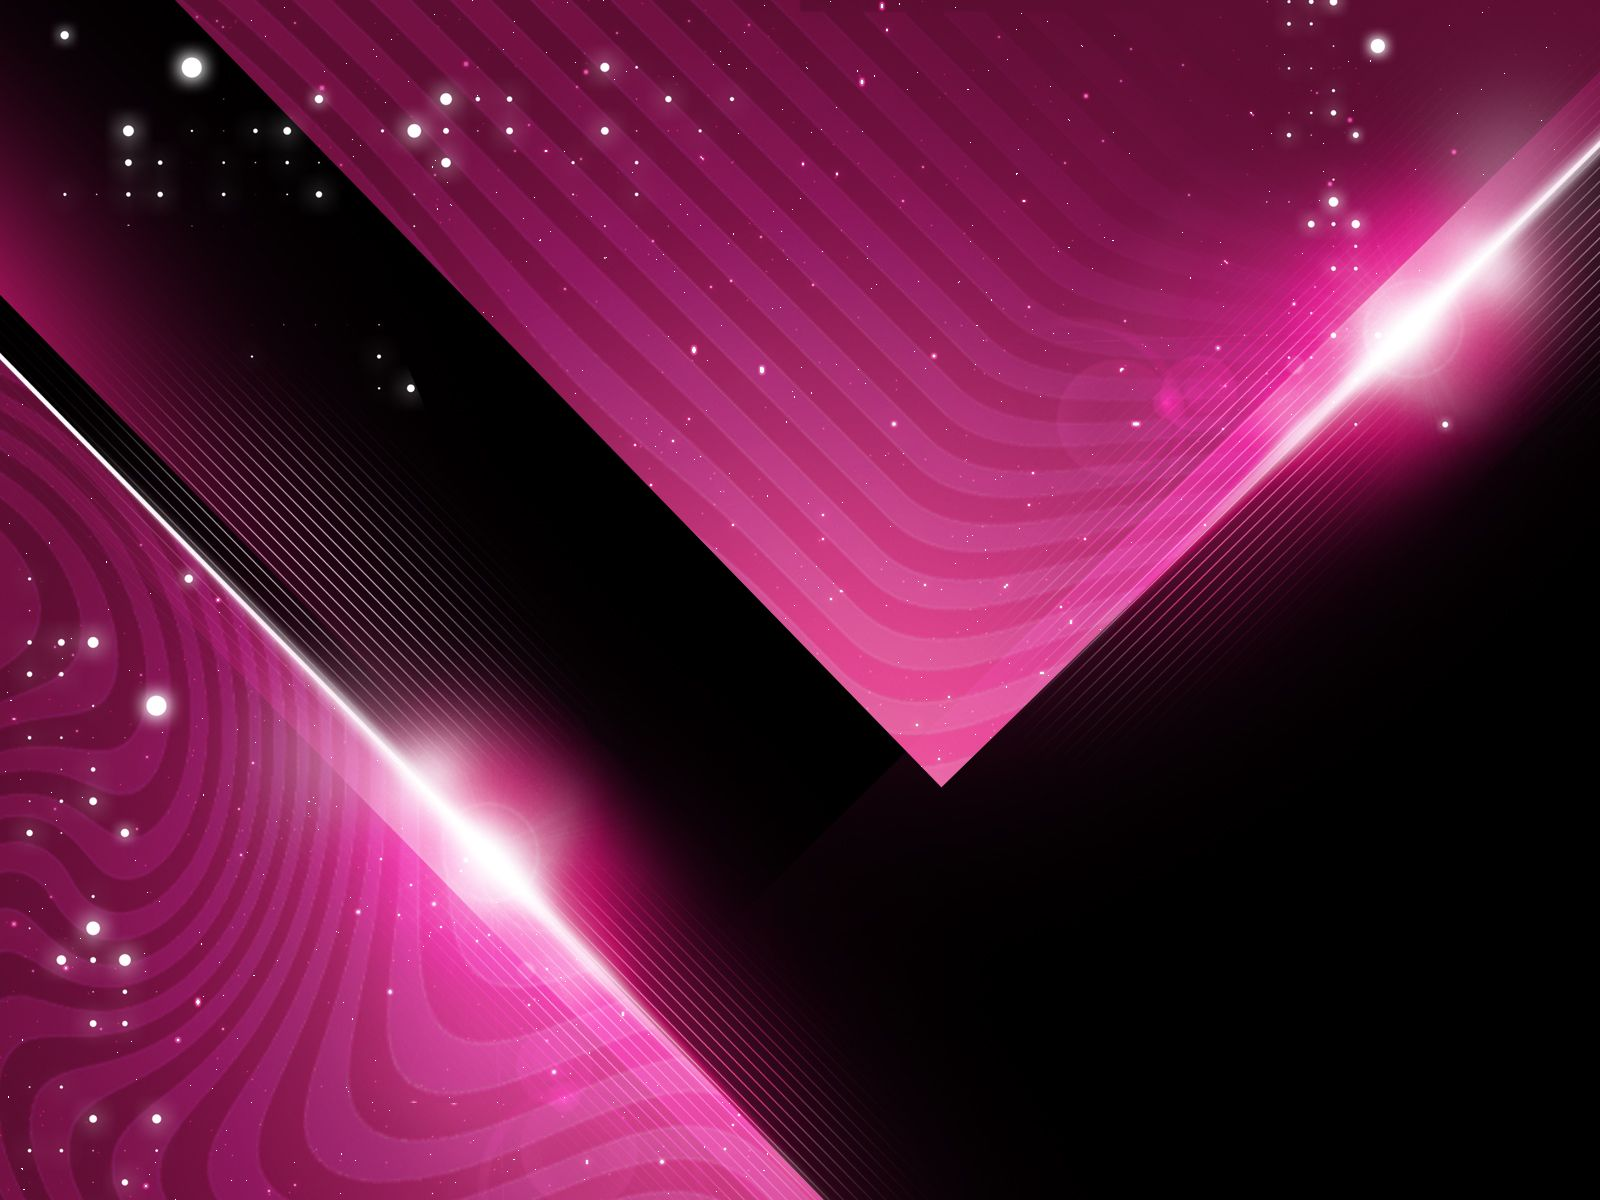 Cool Party Backgrounds Wallpaper (With images) Party